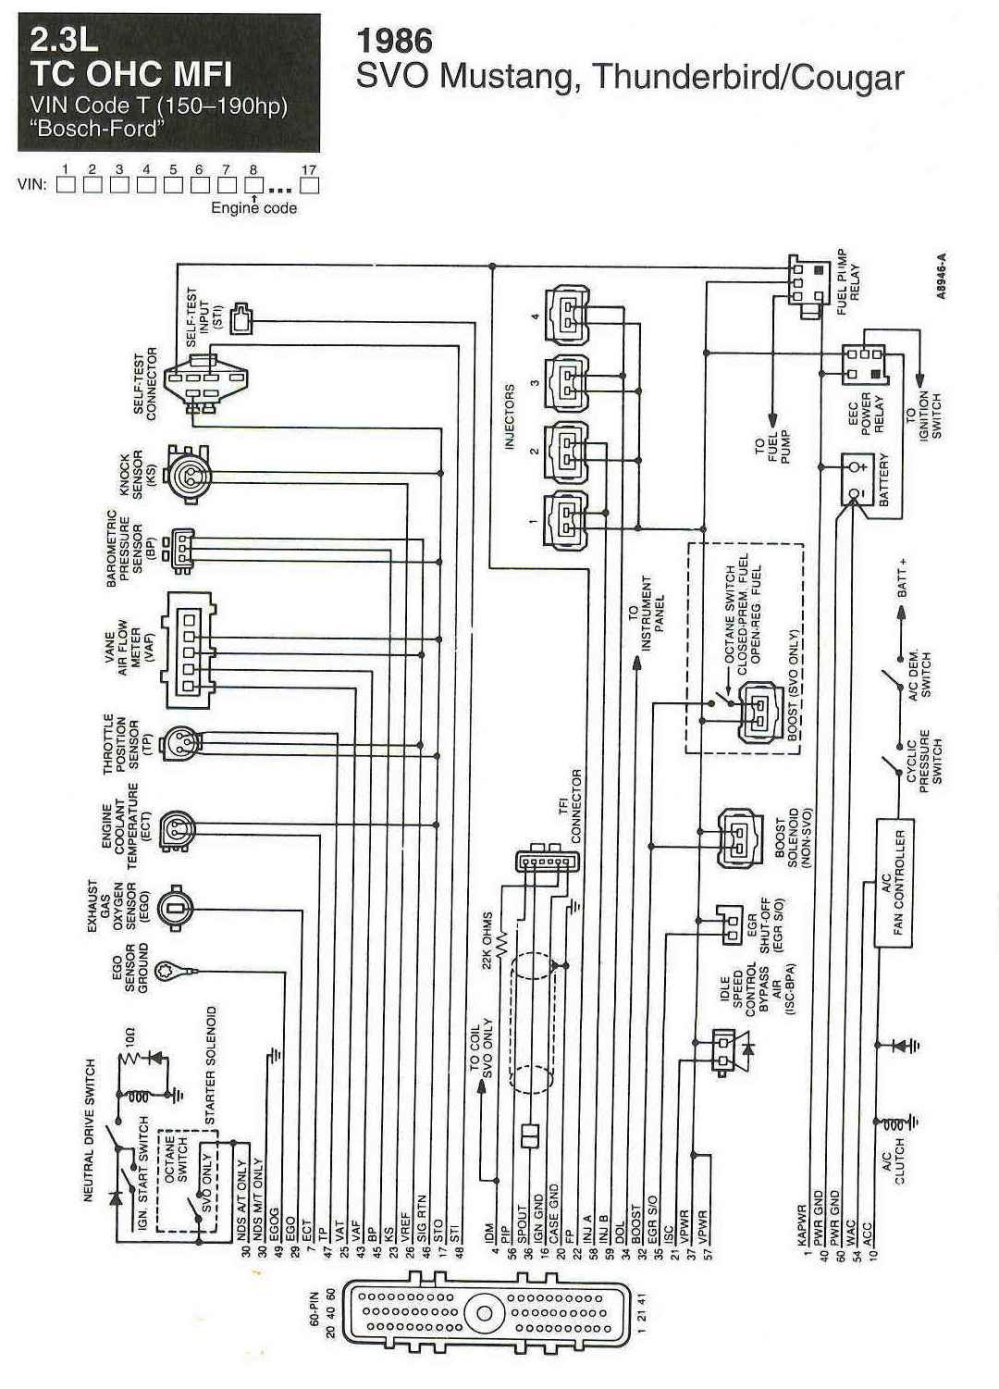 medium resolution of mustang stereo wiring harness diagram wiring diagram database 1986 mustang svo wiring diagram svo mustang wiring diagram